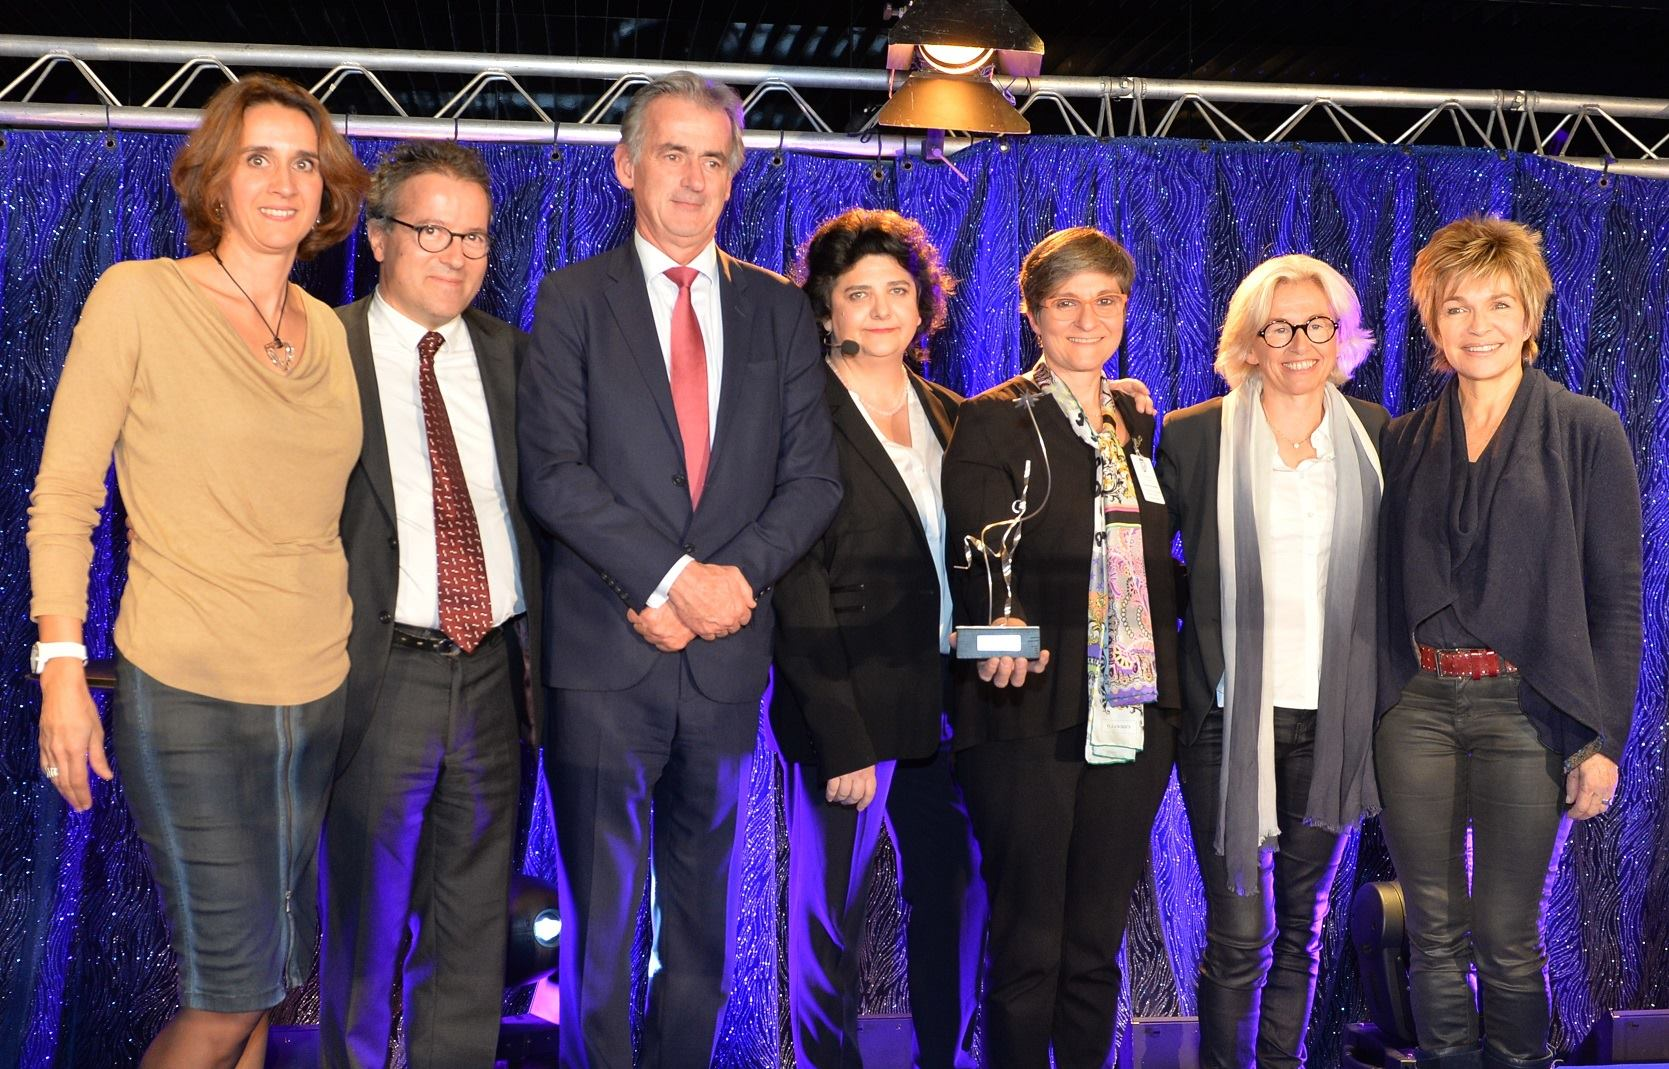 AuditionSolidarité remporte le Prix de la Fondation Air France 2015 !